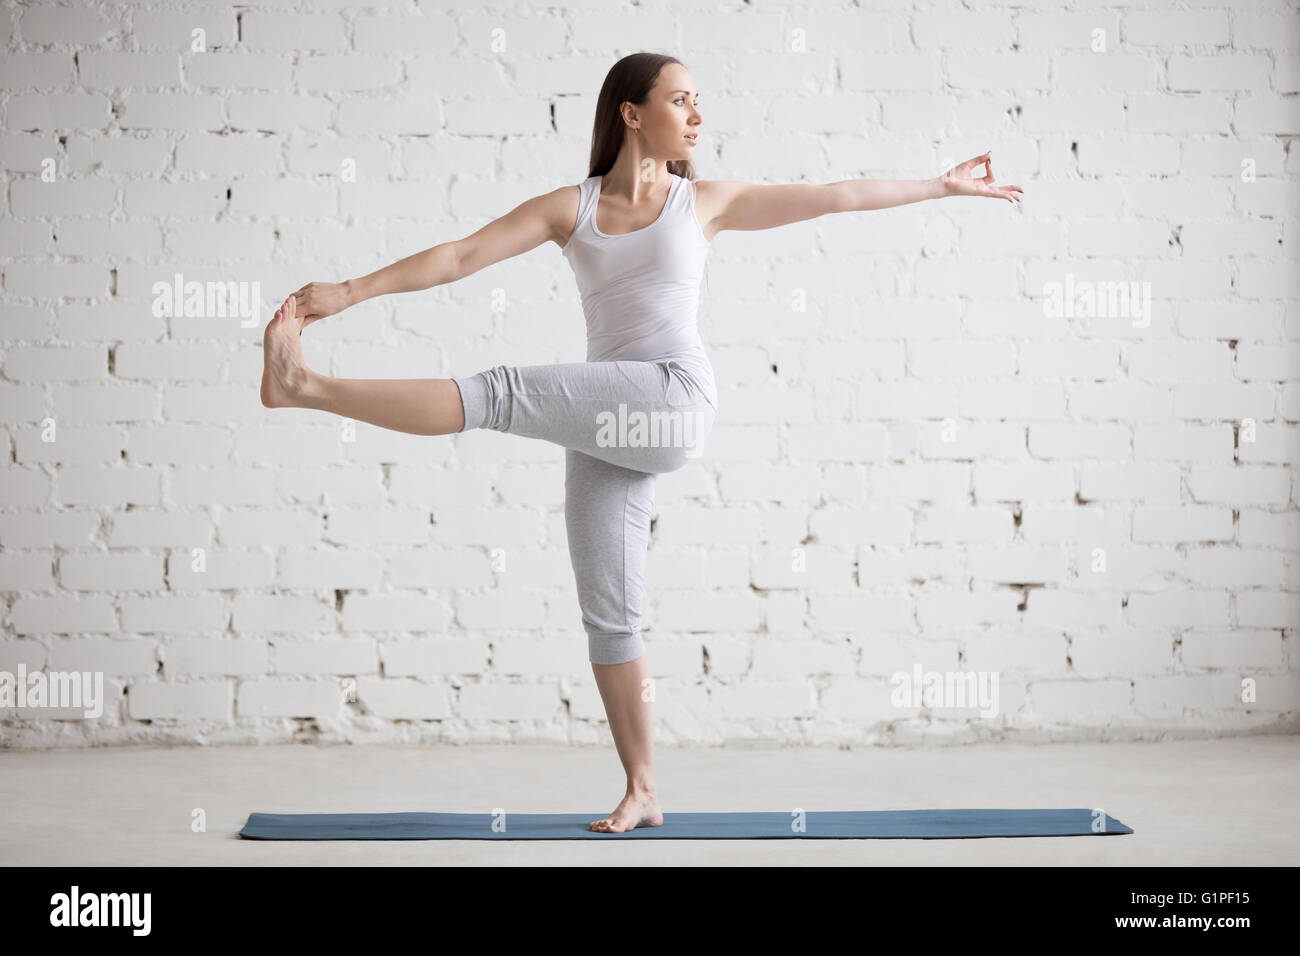 Attractive young woman working out indoors. Beautiful model doing exercises on blue mat in room with white walls - Stock Image